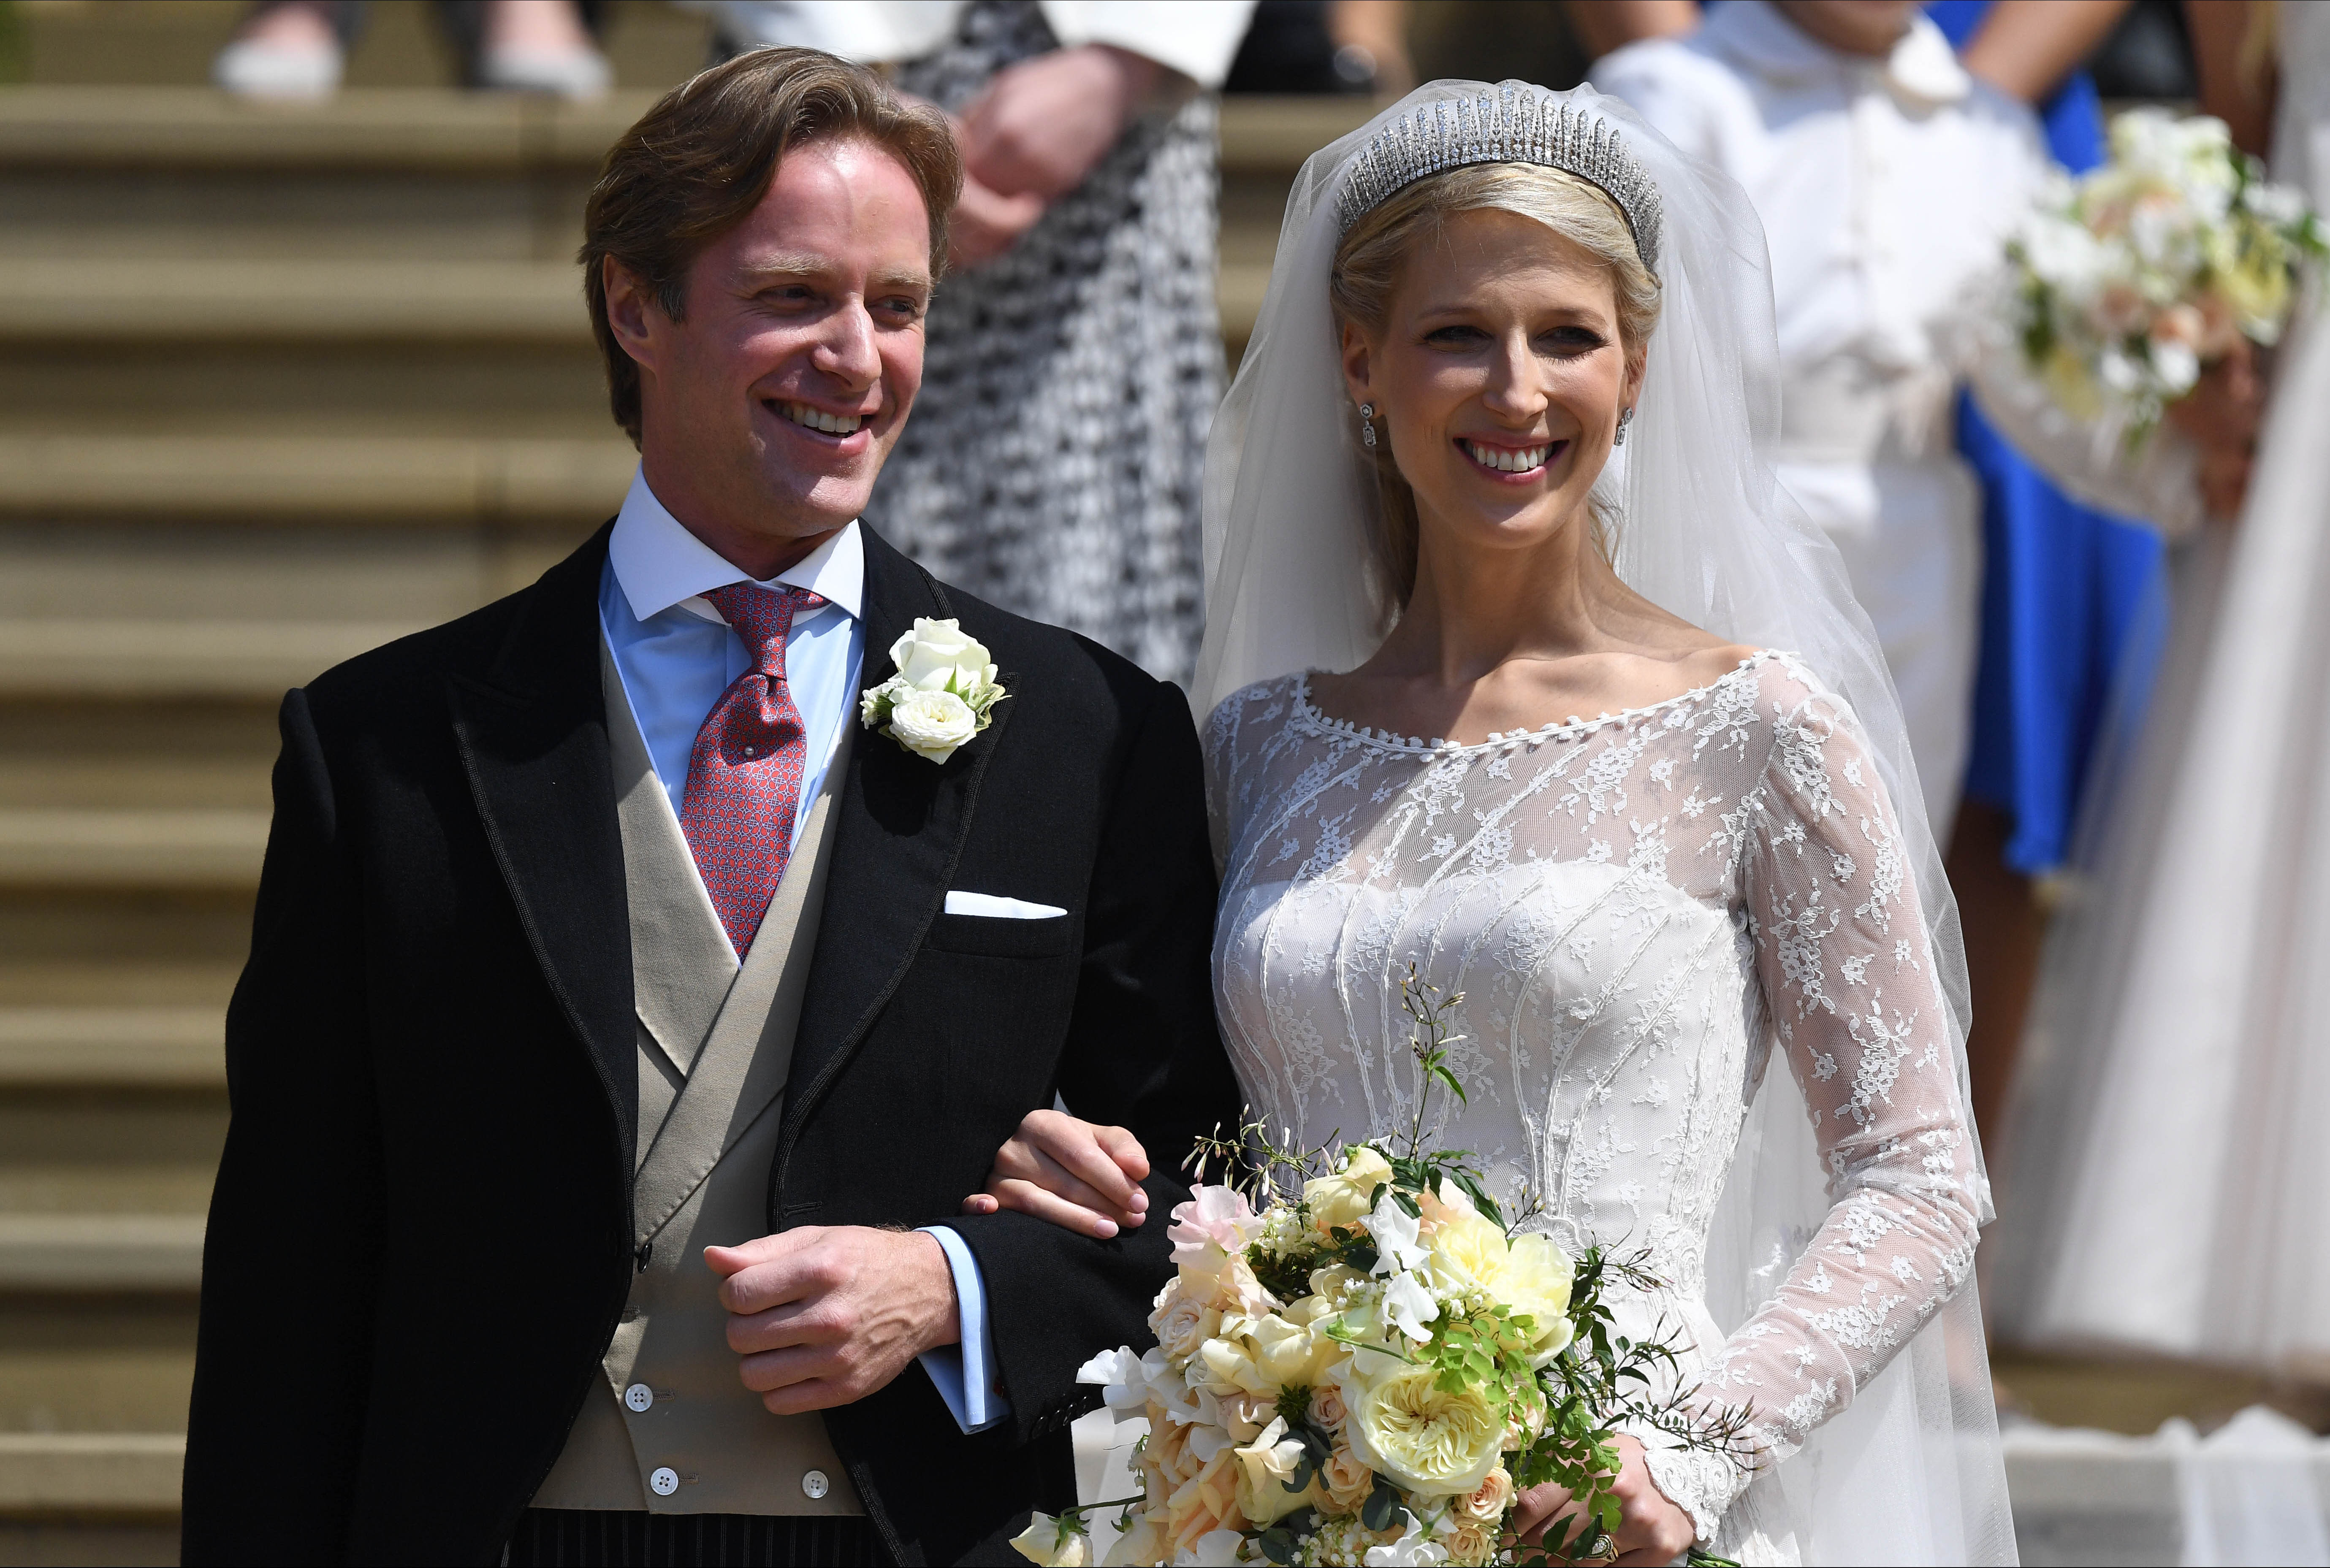 Thomas Kingston and Lady Gabriella Windsor | Photo: Getty Images